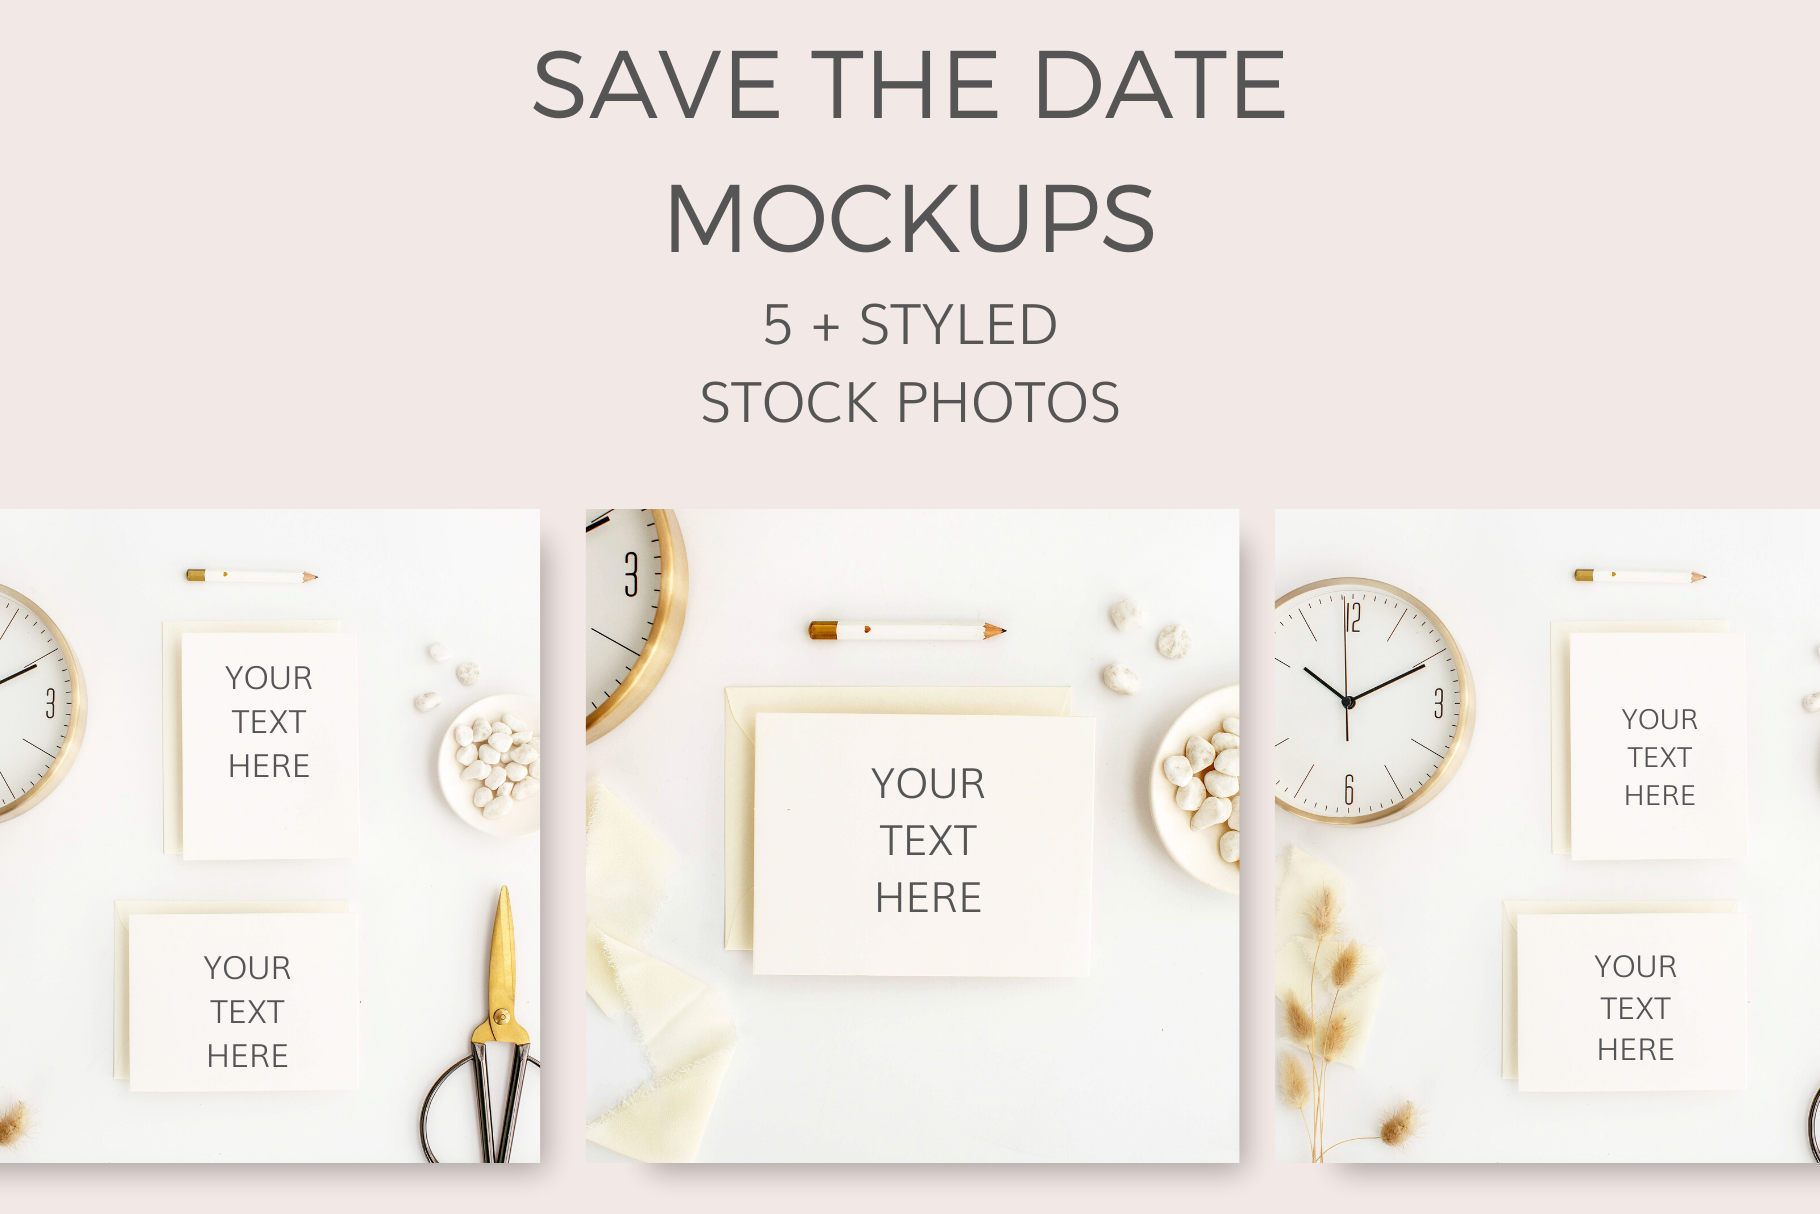 save-the-date stock photos